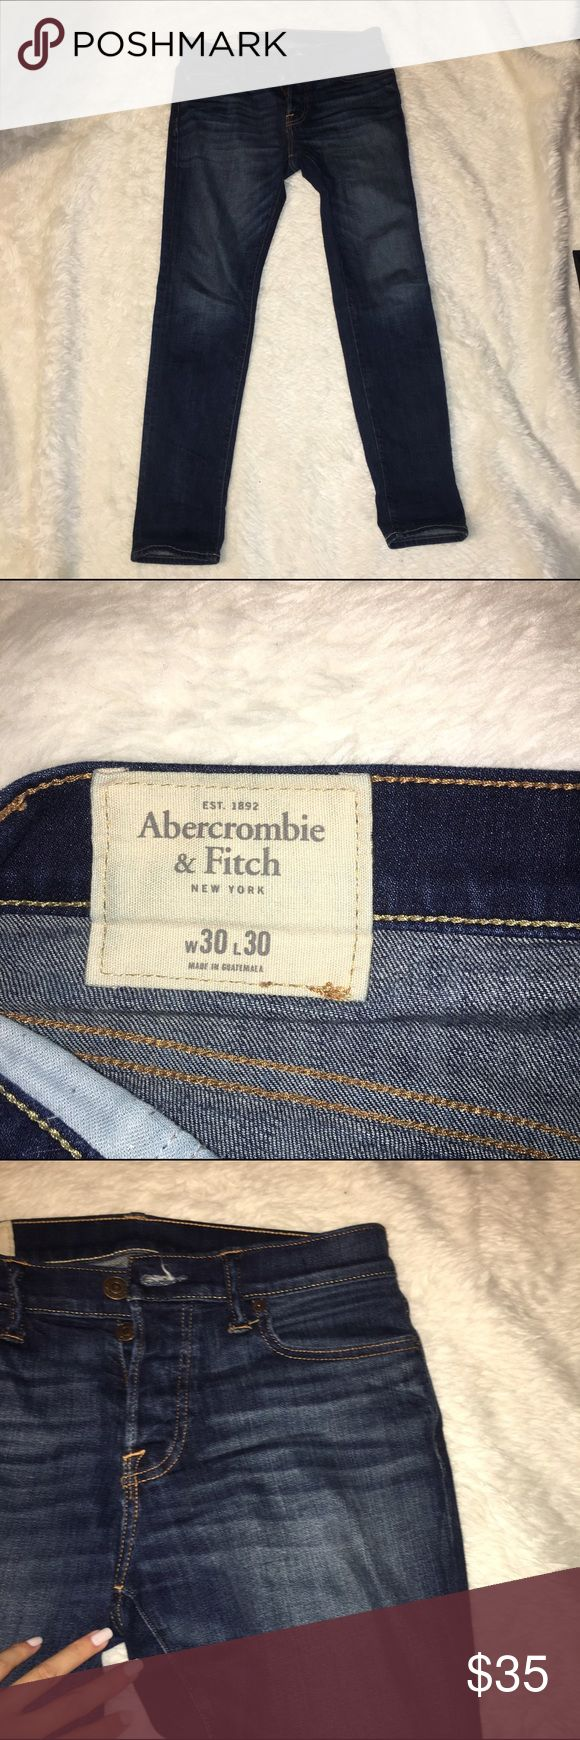 Abercrombie Men's jeans dark wash skinny Men's jeans from Abercrombie and Fitch . Terrific condition no flaws dark wash skinnys Abercrombie & Fitch Jeans Skinny